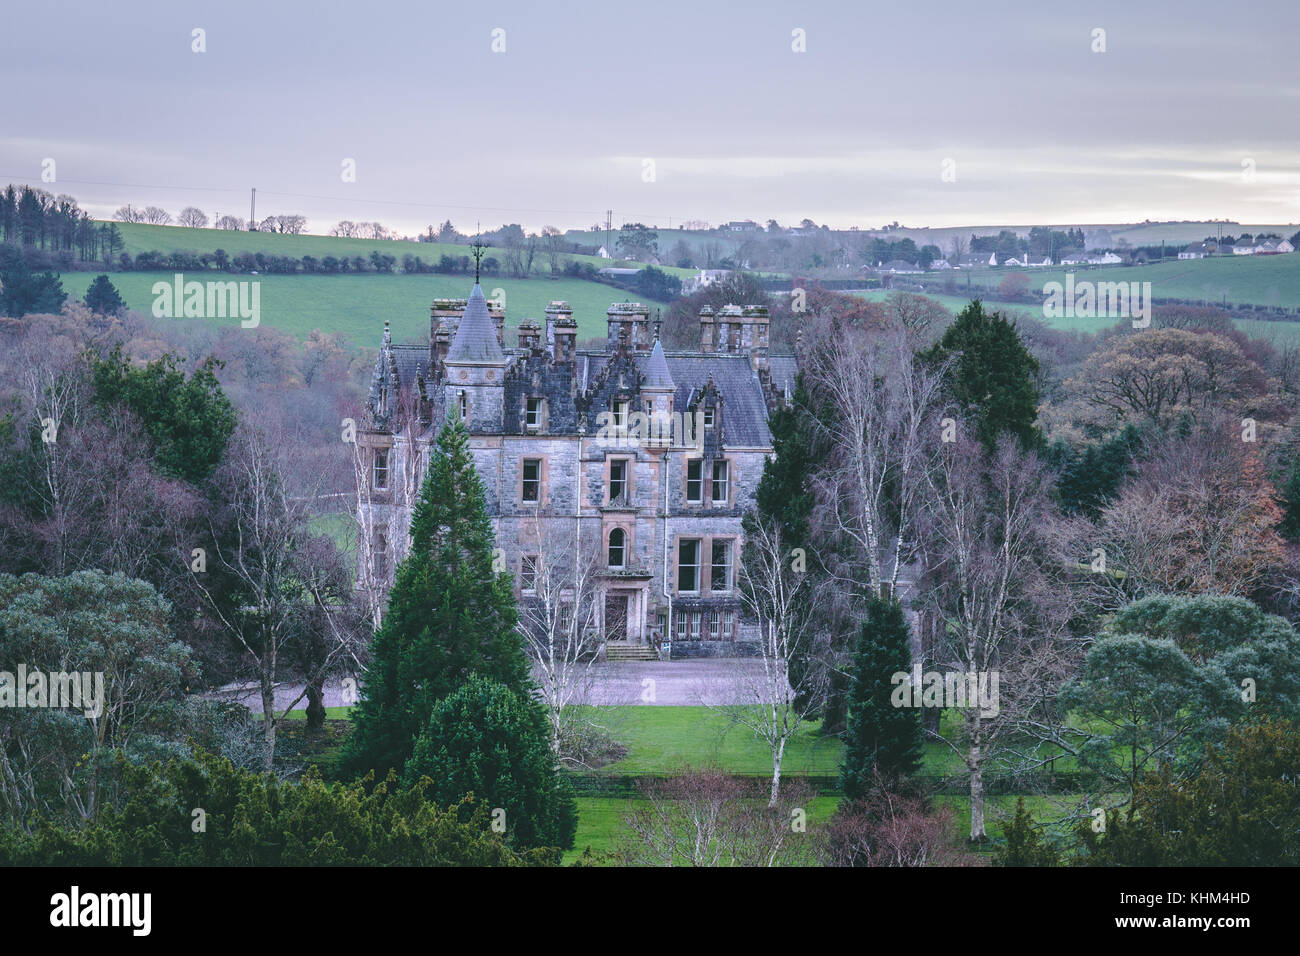 Blarney House, a Scottish Baronial mansion designed by John Lanyon at Blarney Castle. - Stock Image